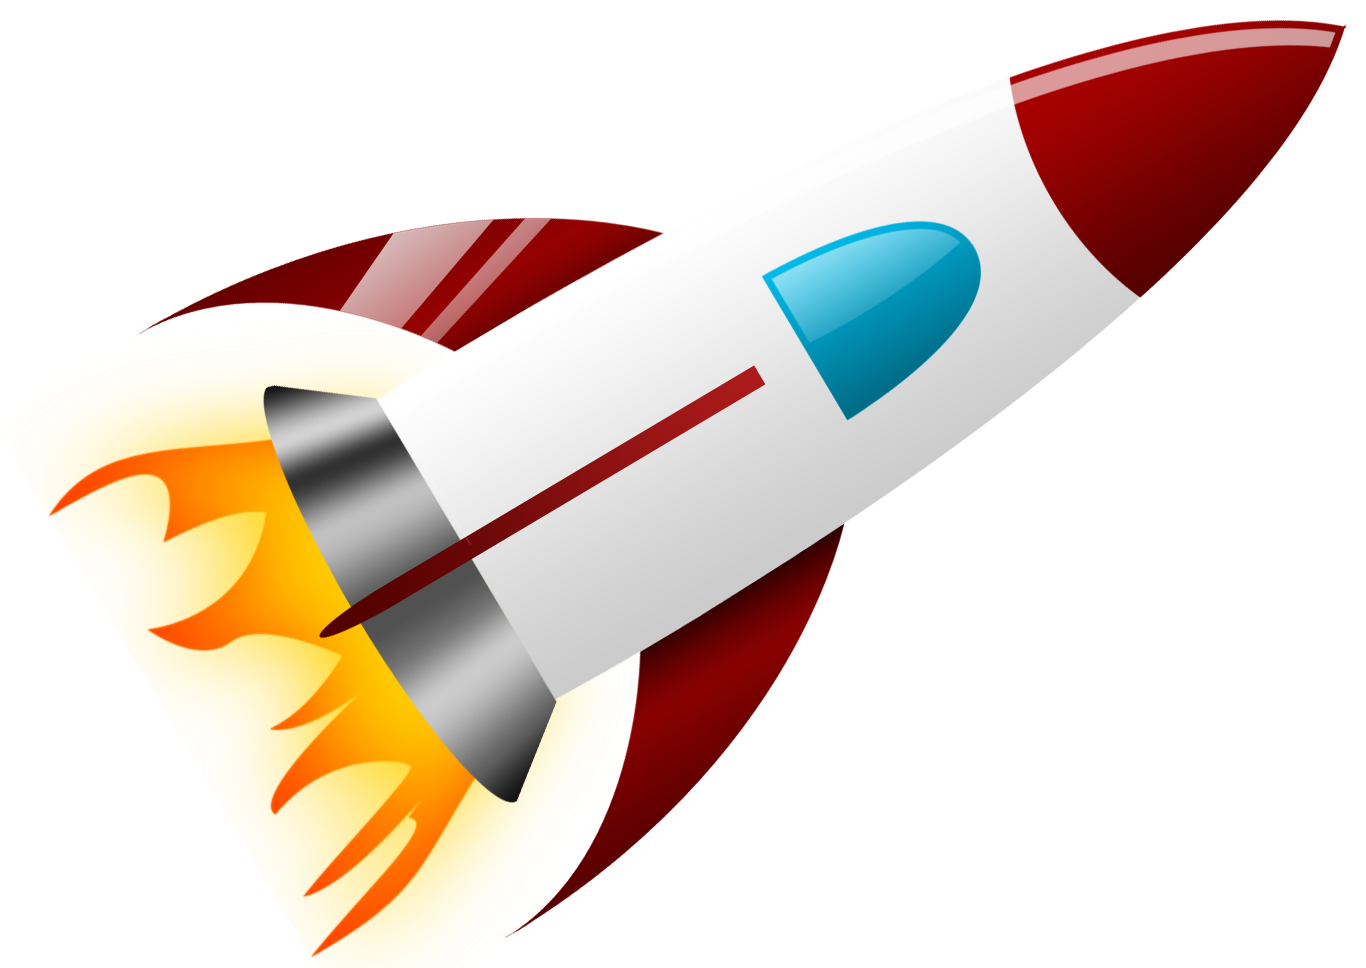 Rocket clipart transparent background #9